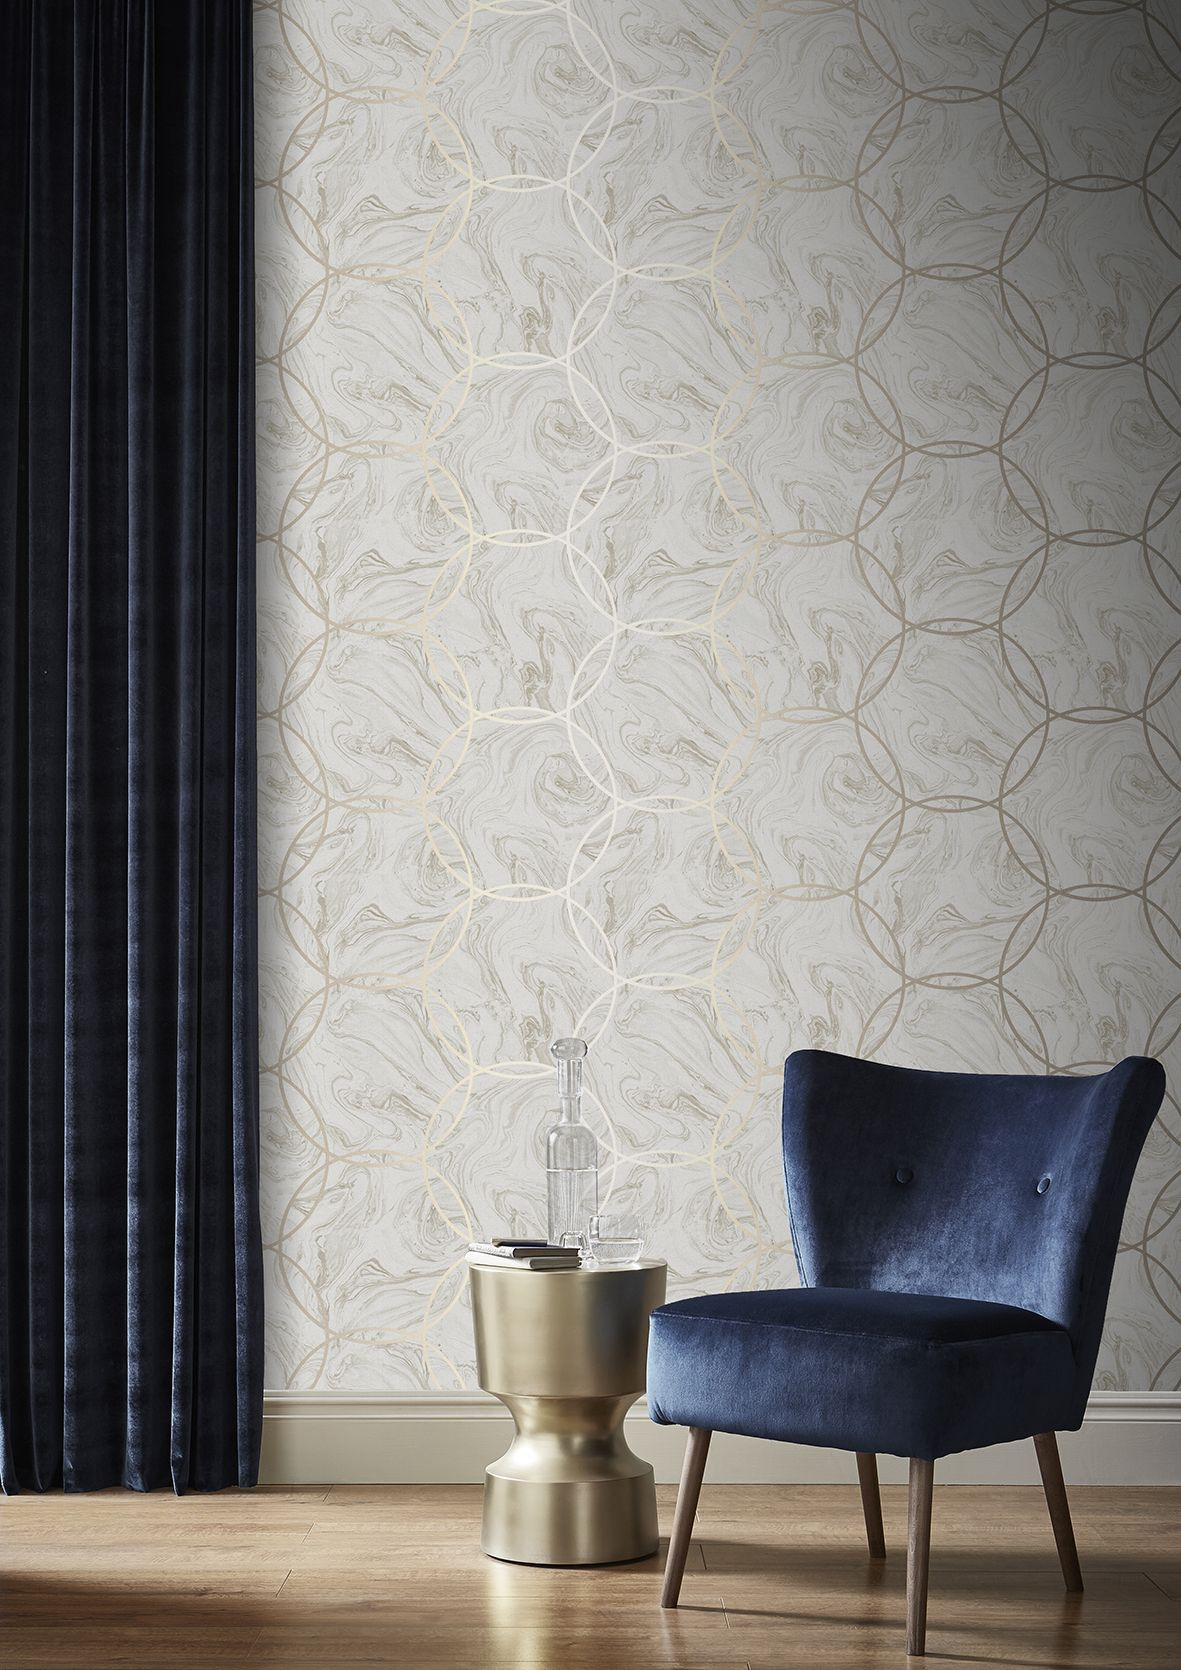 Add A Touch Of Modern Luxe With Aqueous Geo Taupe Wallpaper This Stunning Neutral Marble Is Showcased Geometric Gold Metallic Circles On Beautiful